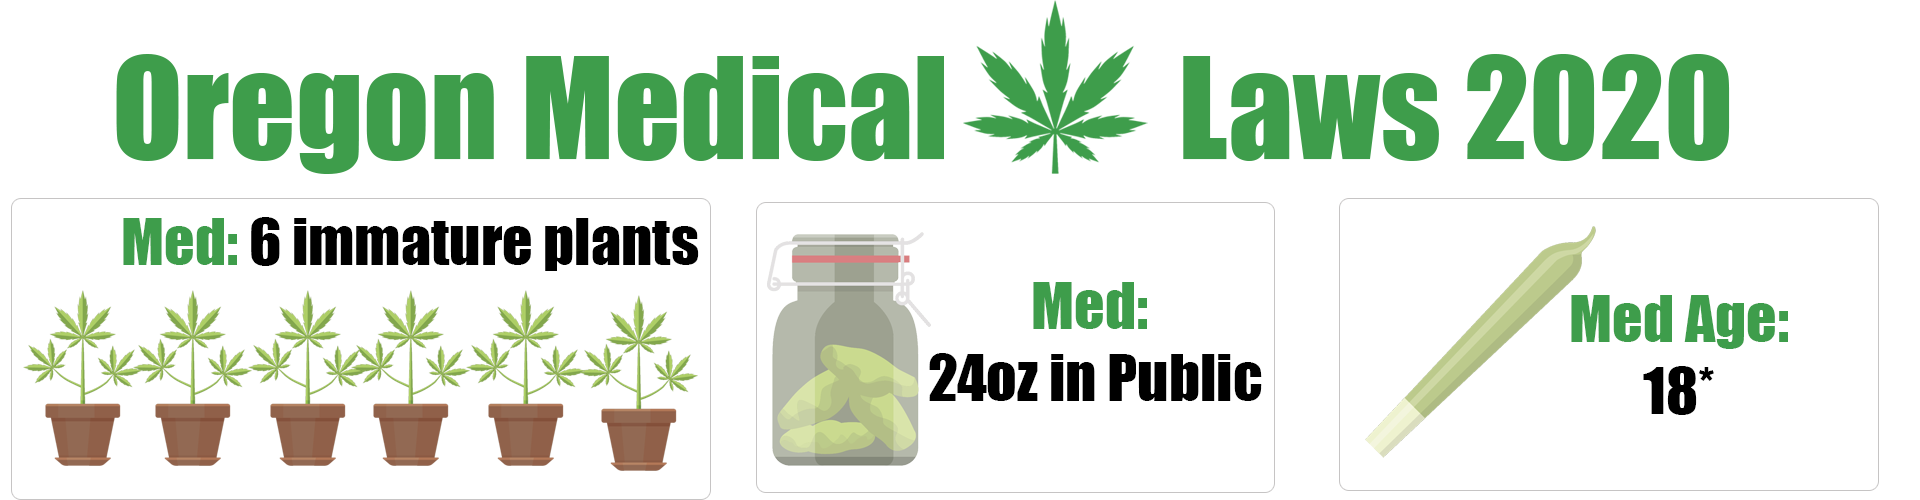 medical marijuana laws 2020